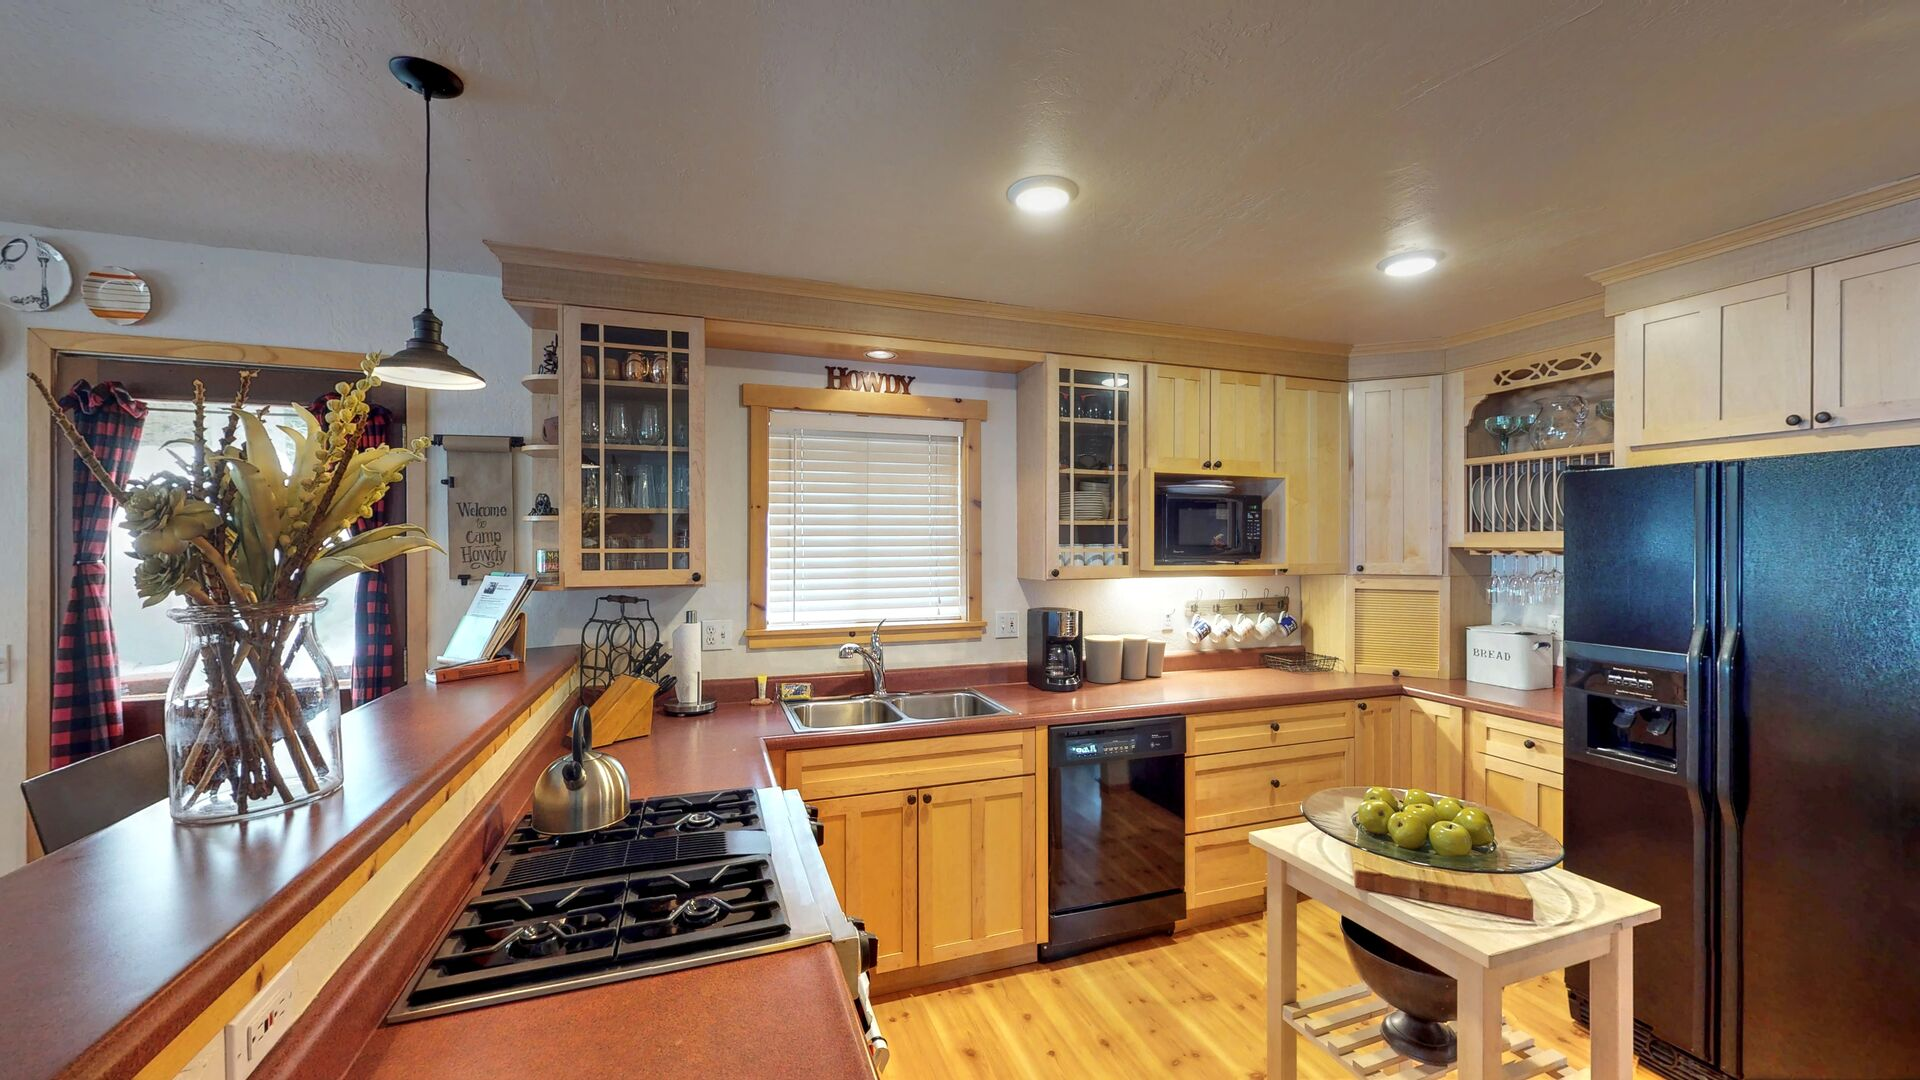 Large Kitchen Fully Equipped with Appliances